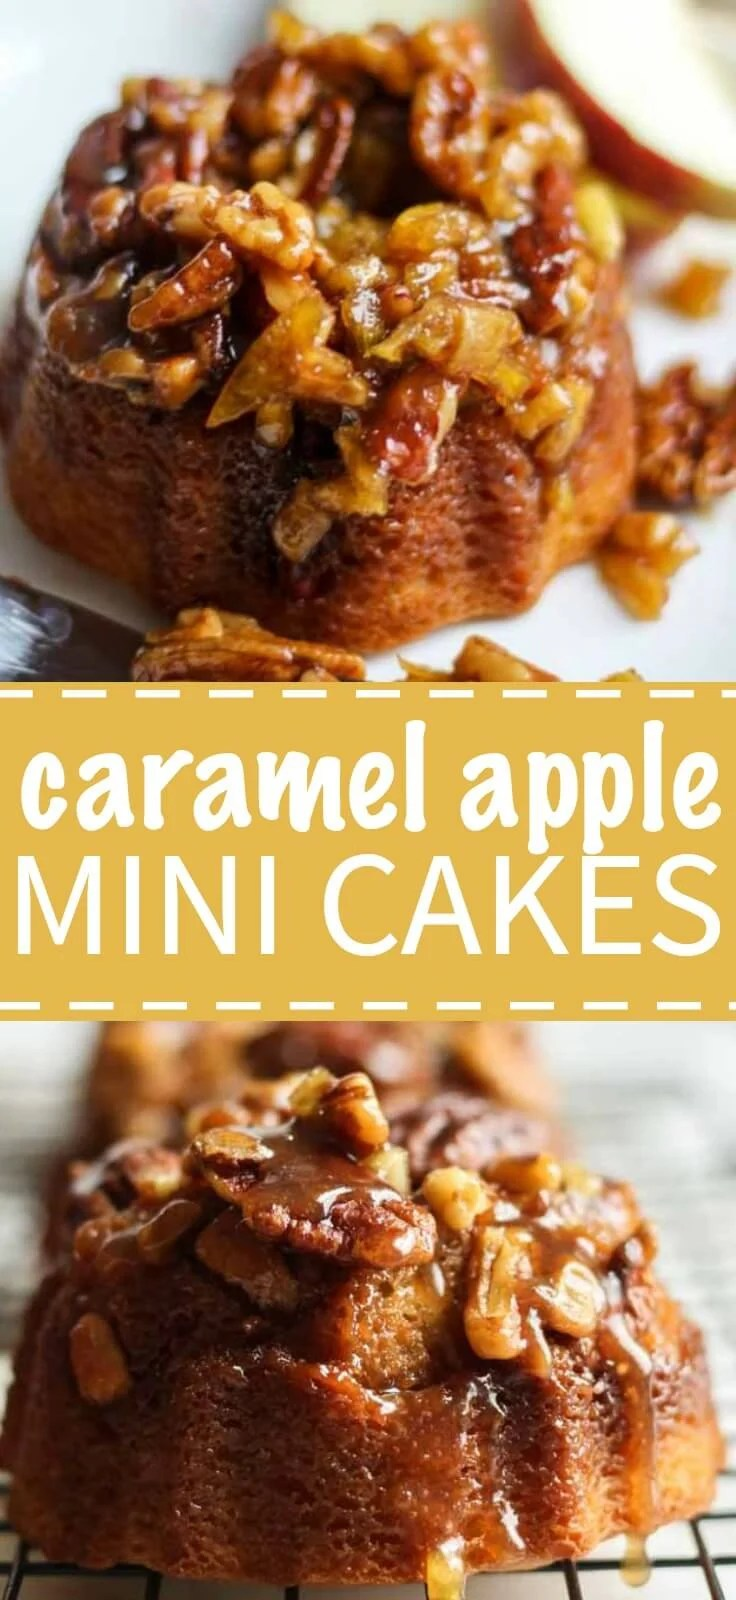 Individual fall-inspired cakes that you will be so proud to serve your family and friends at your next party. These adorable caramel apple mini cakes are made in mini bundt pans and they're filled with so much flavor (cinnamon, apples, caramel, oh my!).